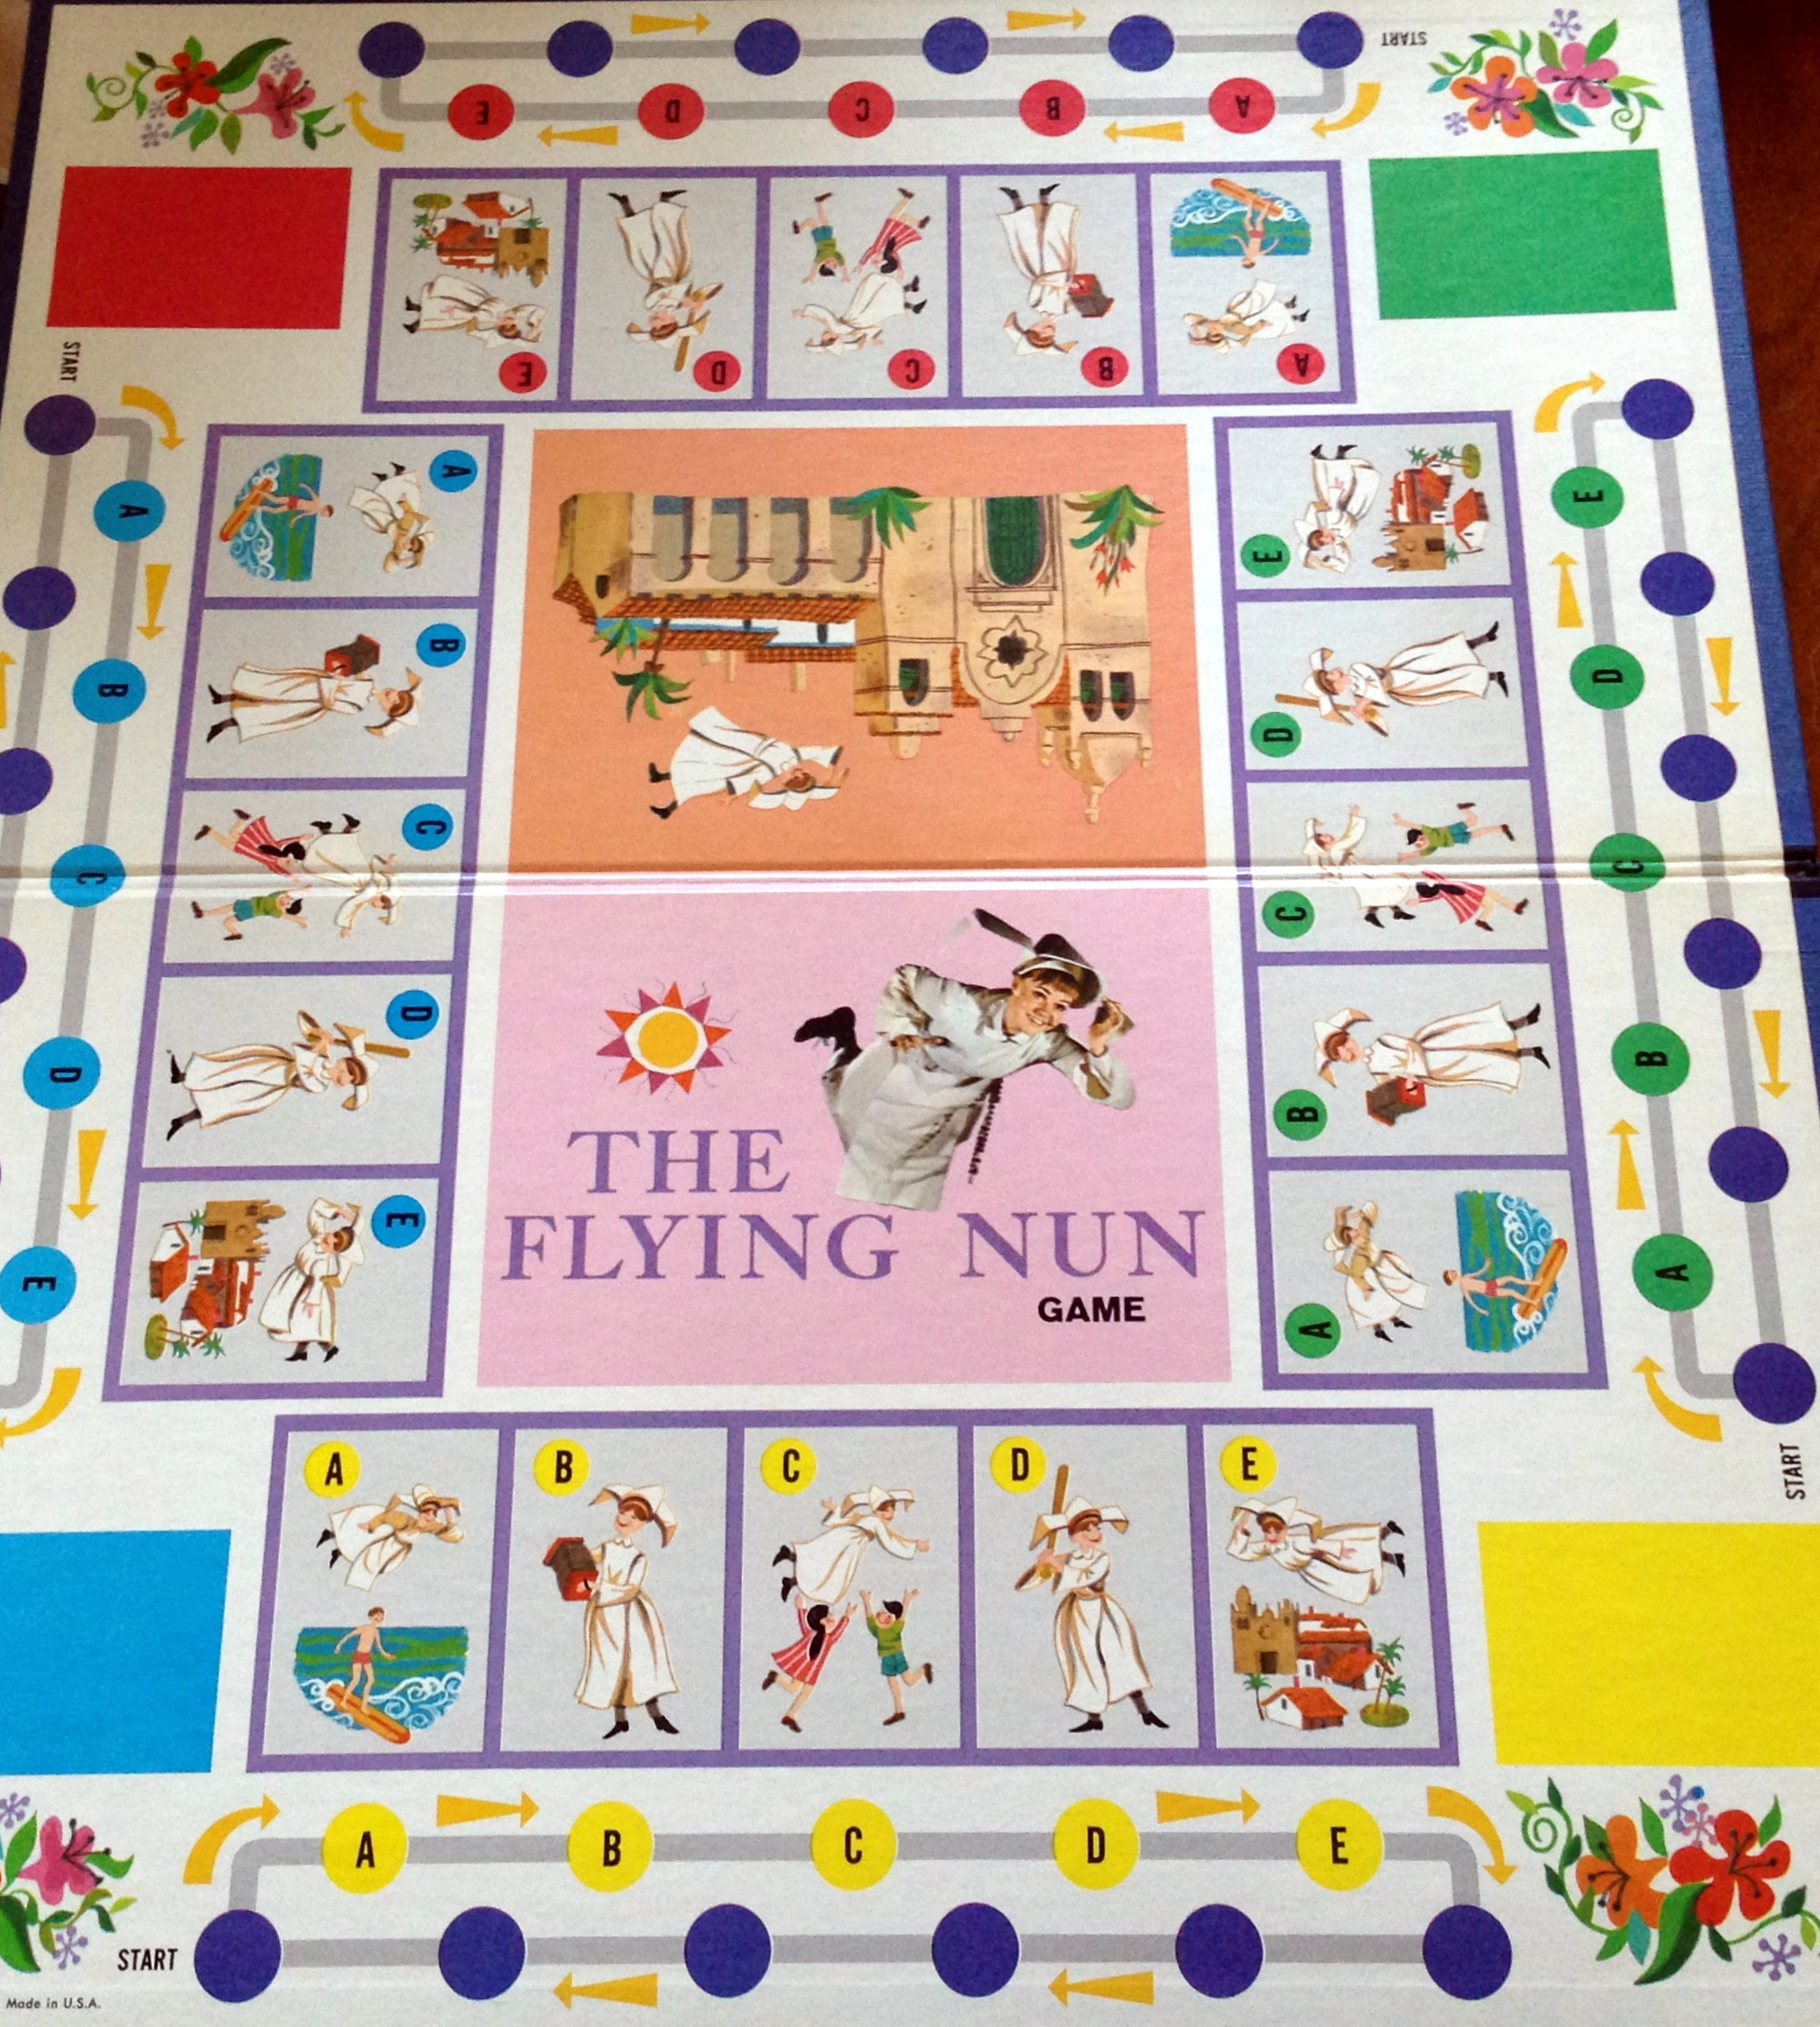 Spin again sunday extra the flying nun game 1968 embarrassing flying nun board pronofoot35fo Images